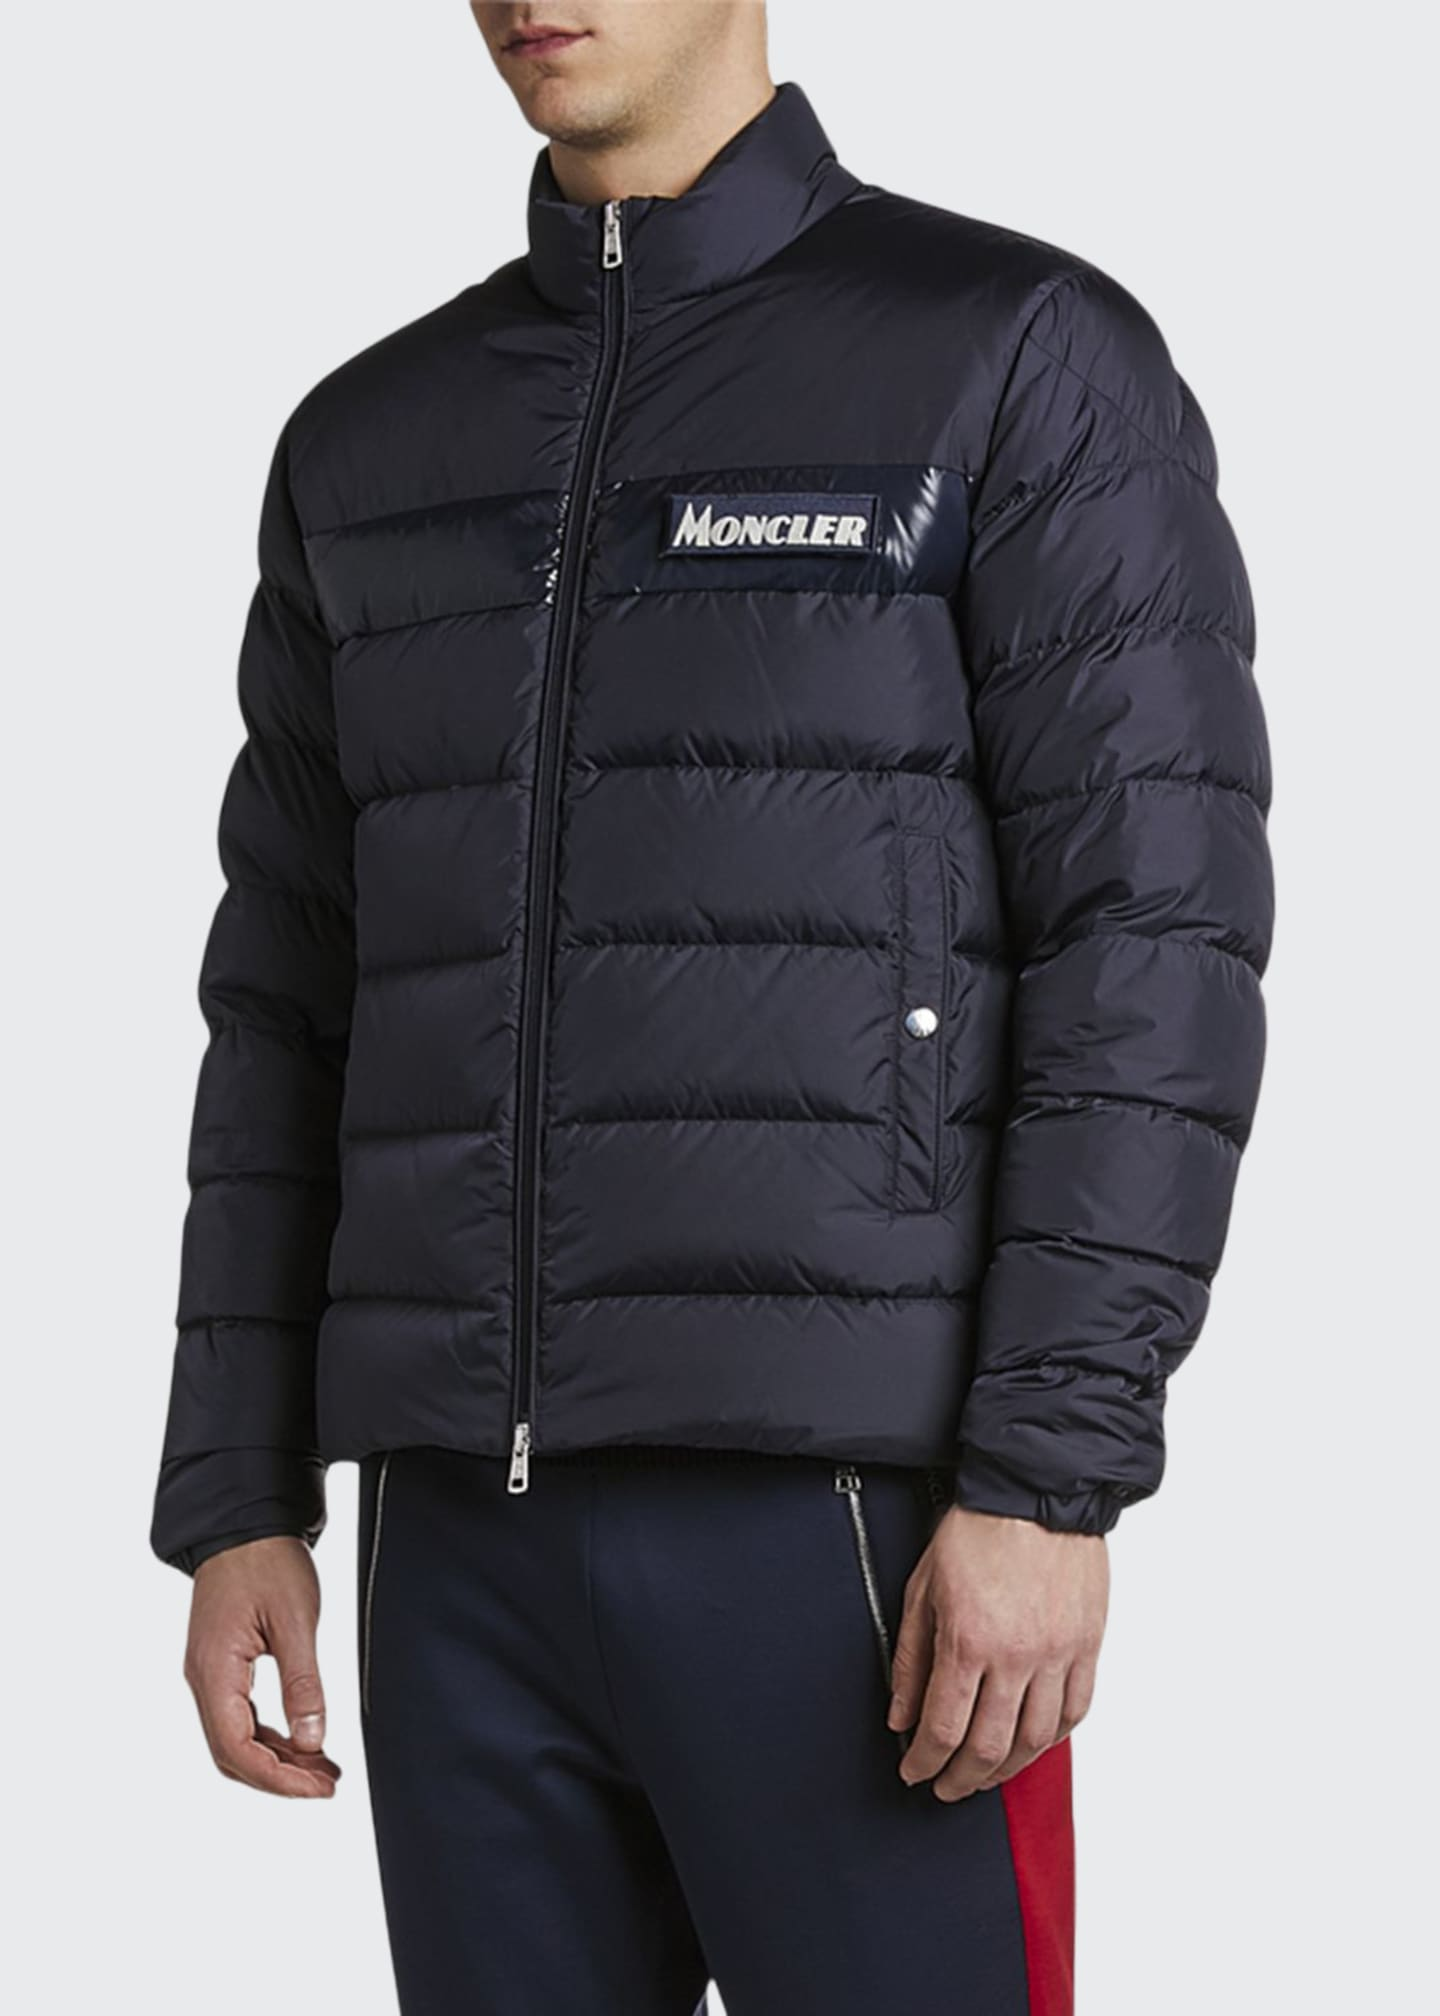 Moncler Men's Servieres Zip-Up Puffer Jacket